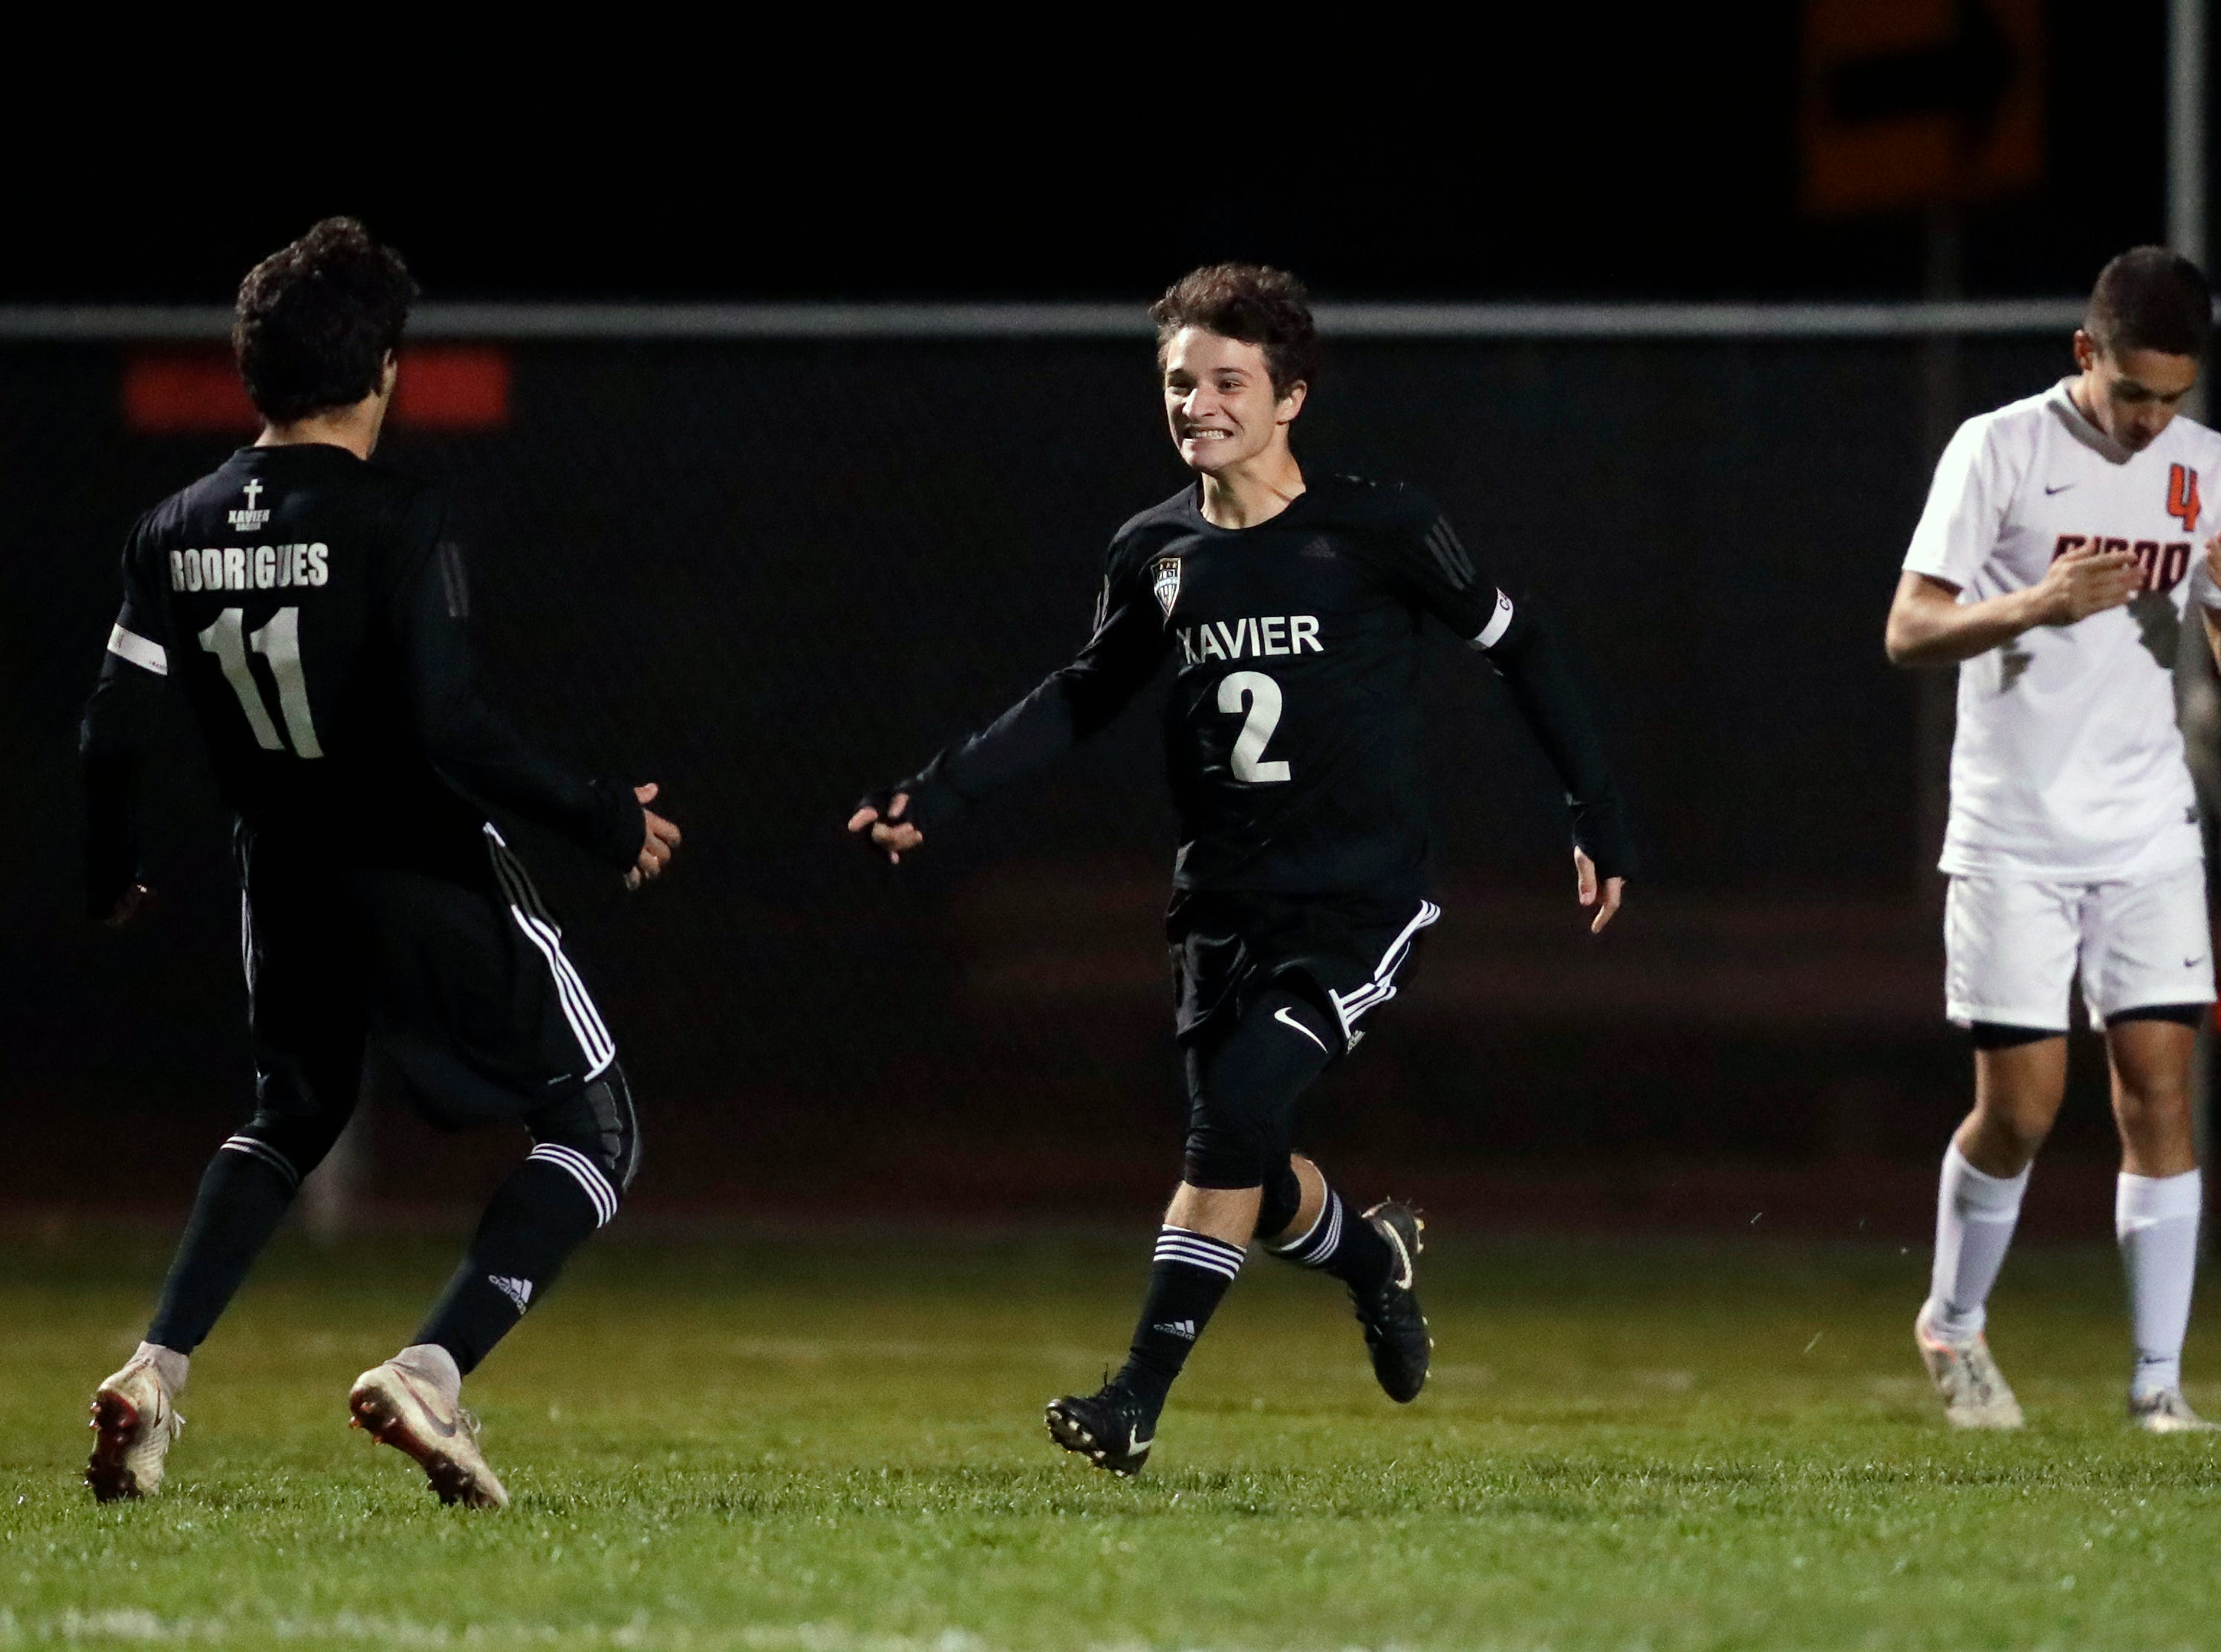 Xavier High School's William Mleziva (2) celebrates scoring a goal with teammate Patrik Rodrigues (11) against Ripon High School's Matt Meincke (4) during their WIAA Division 3 boys soccer regional game Thursday, Oct. 18, 2018, in Appleton, Wis. 